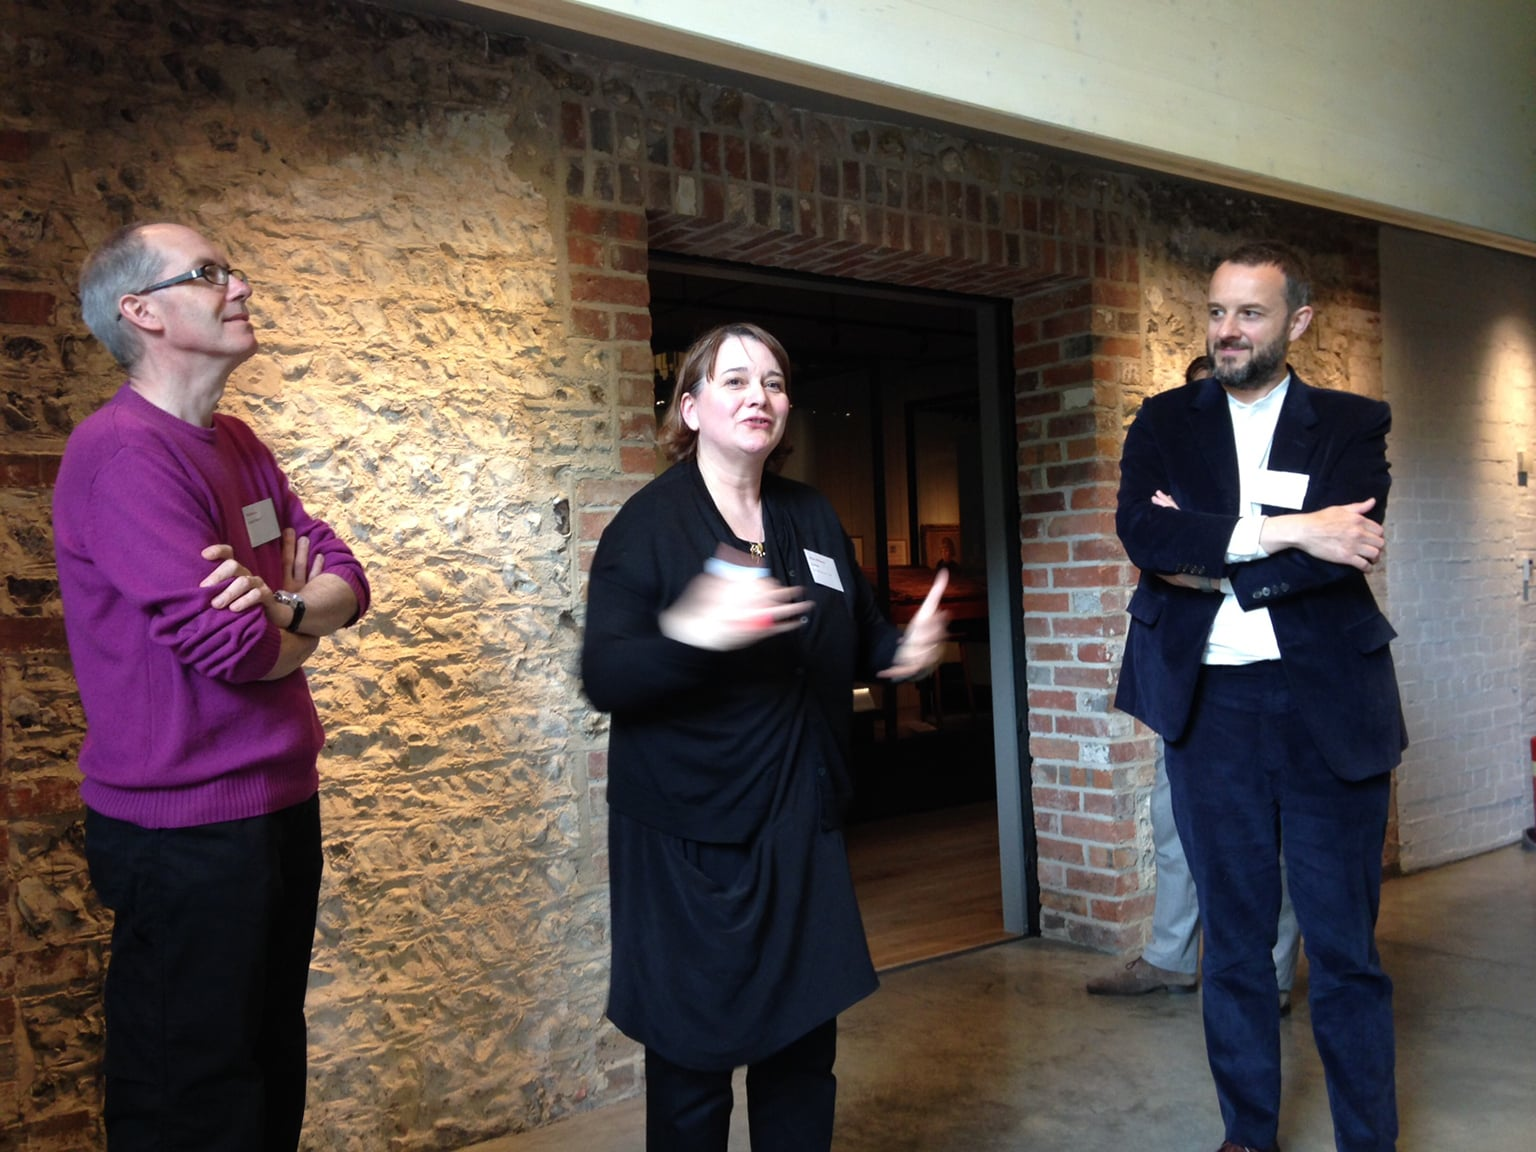 The museum's staff, including Director Hilary Williams, give an introduction -